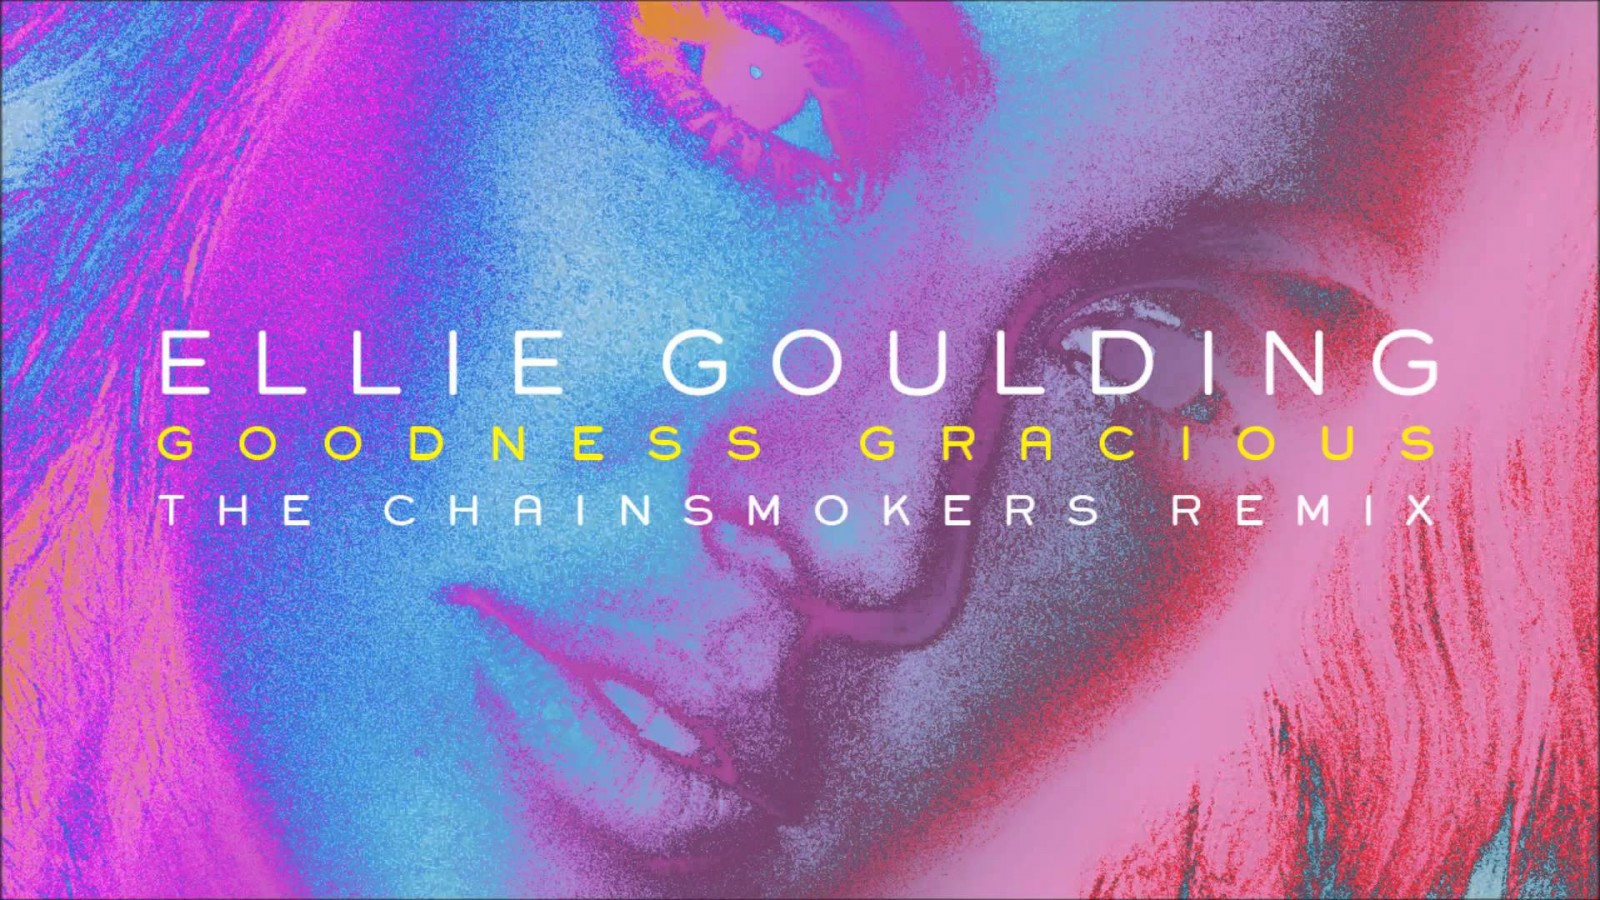 Ellie-Goulding-Good-Gracious-The-Chainsmokers-Remix